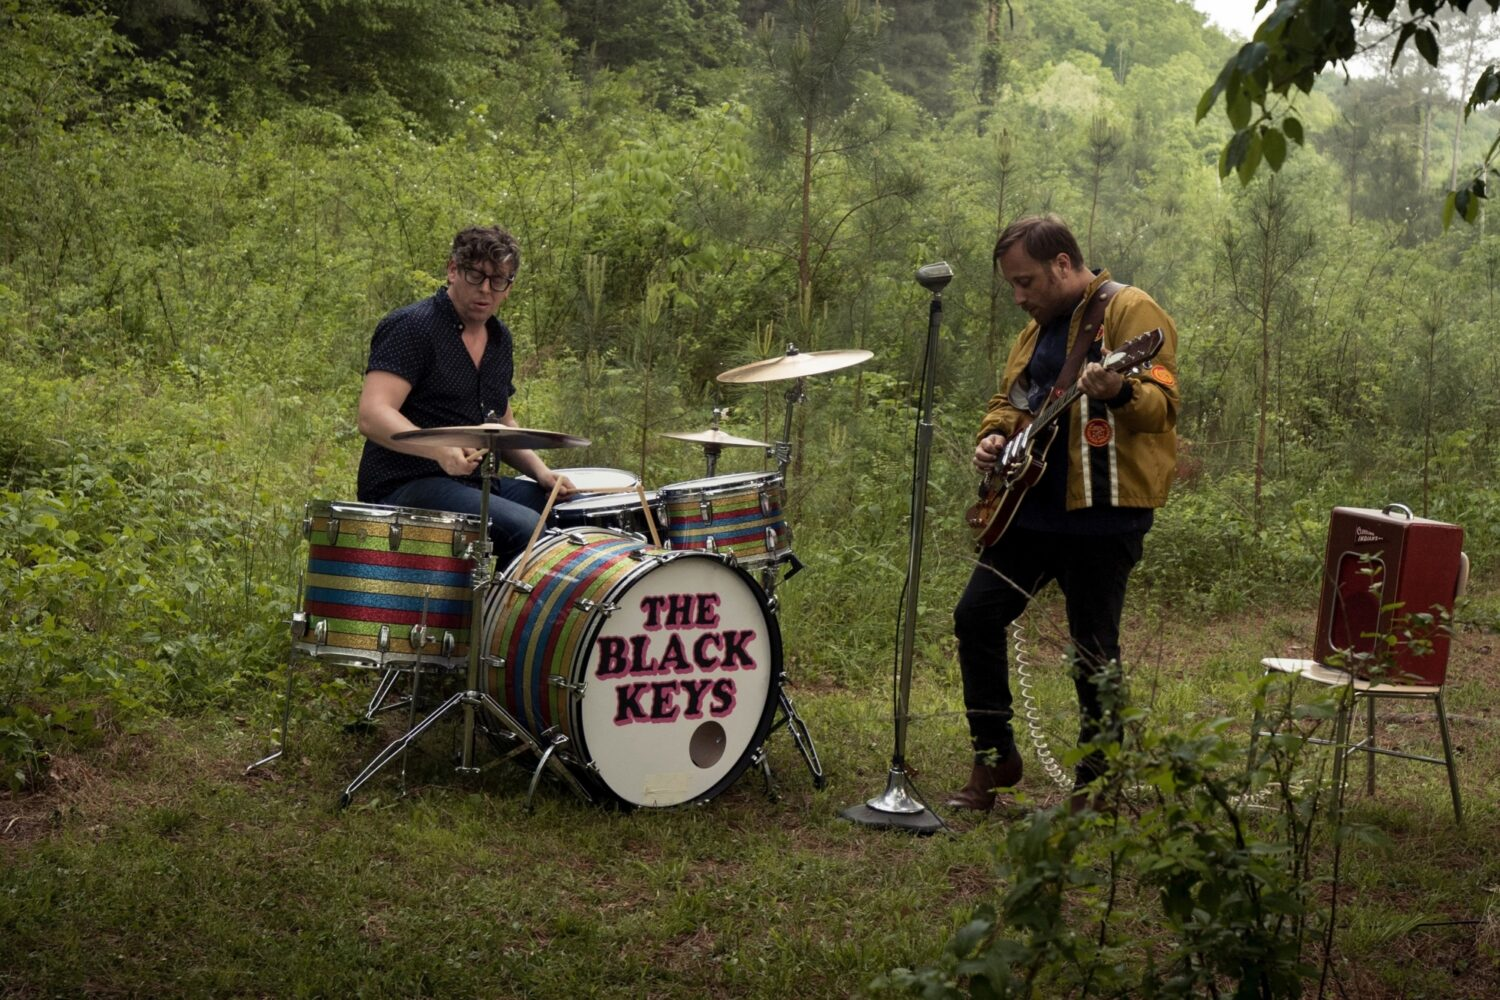 The Black Keys go to therapy after five years apart in the new video for 'Go'